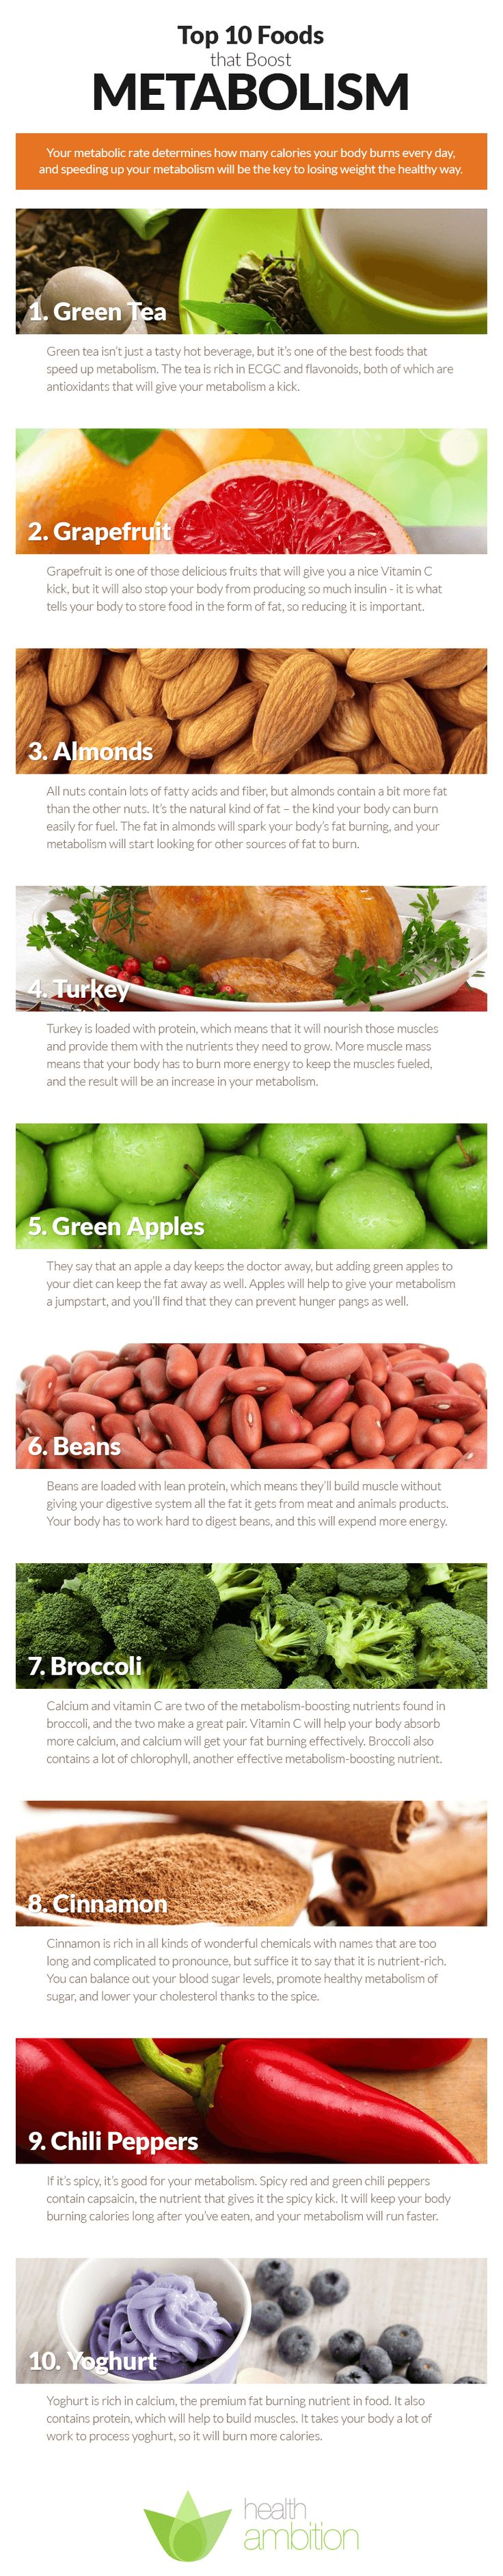 There are many Foods that Boost Metabolism, and you'll be able to get your body burning fat easily thanks to the 10 foods listed here...